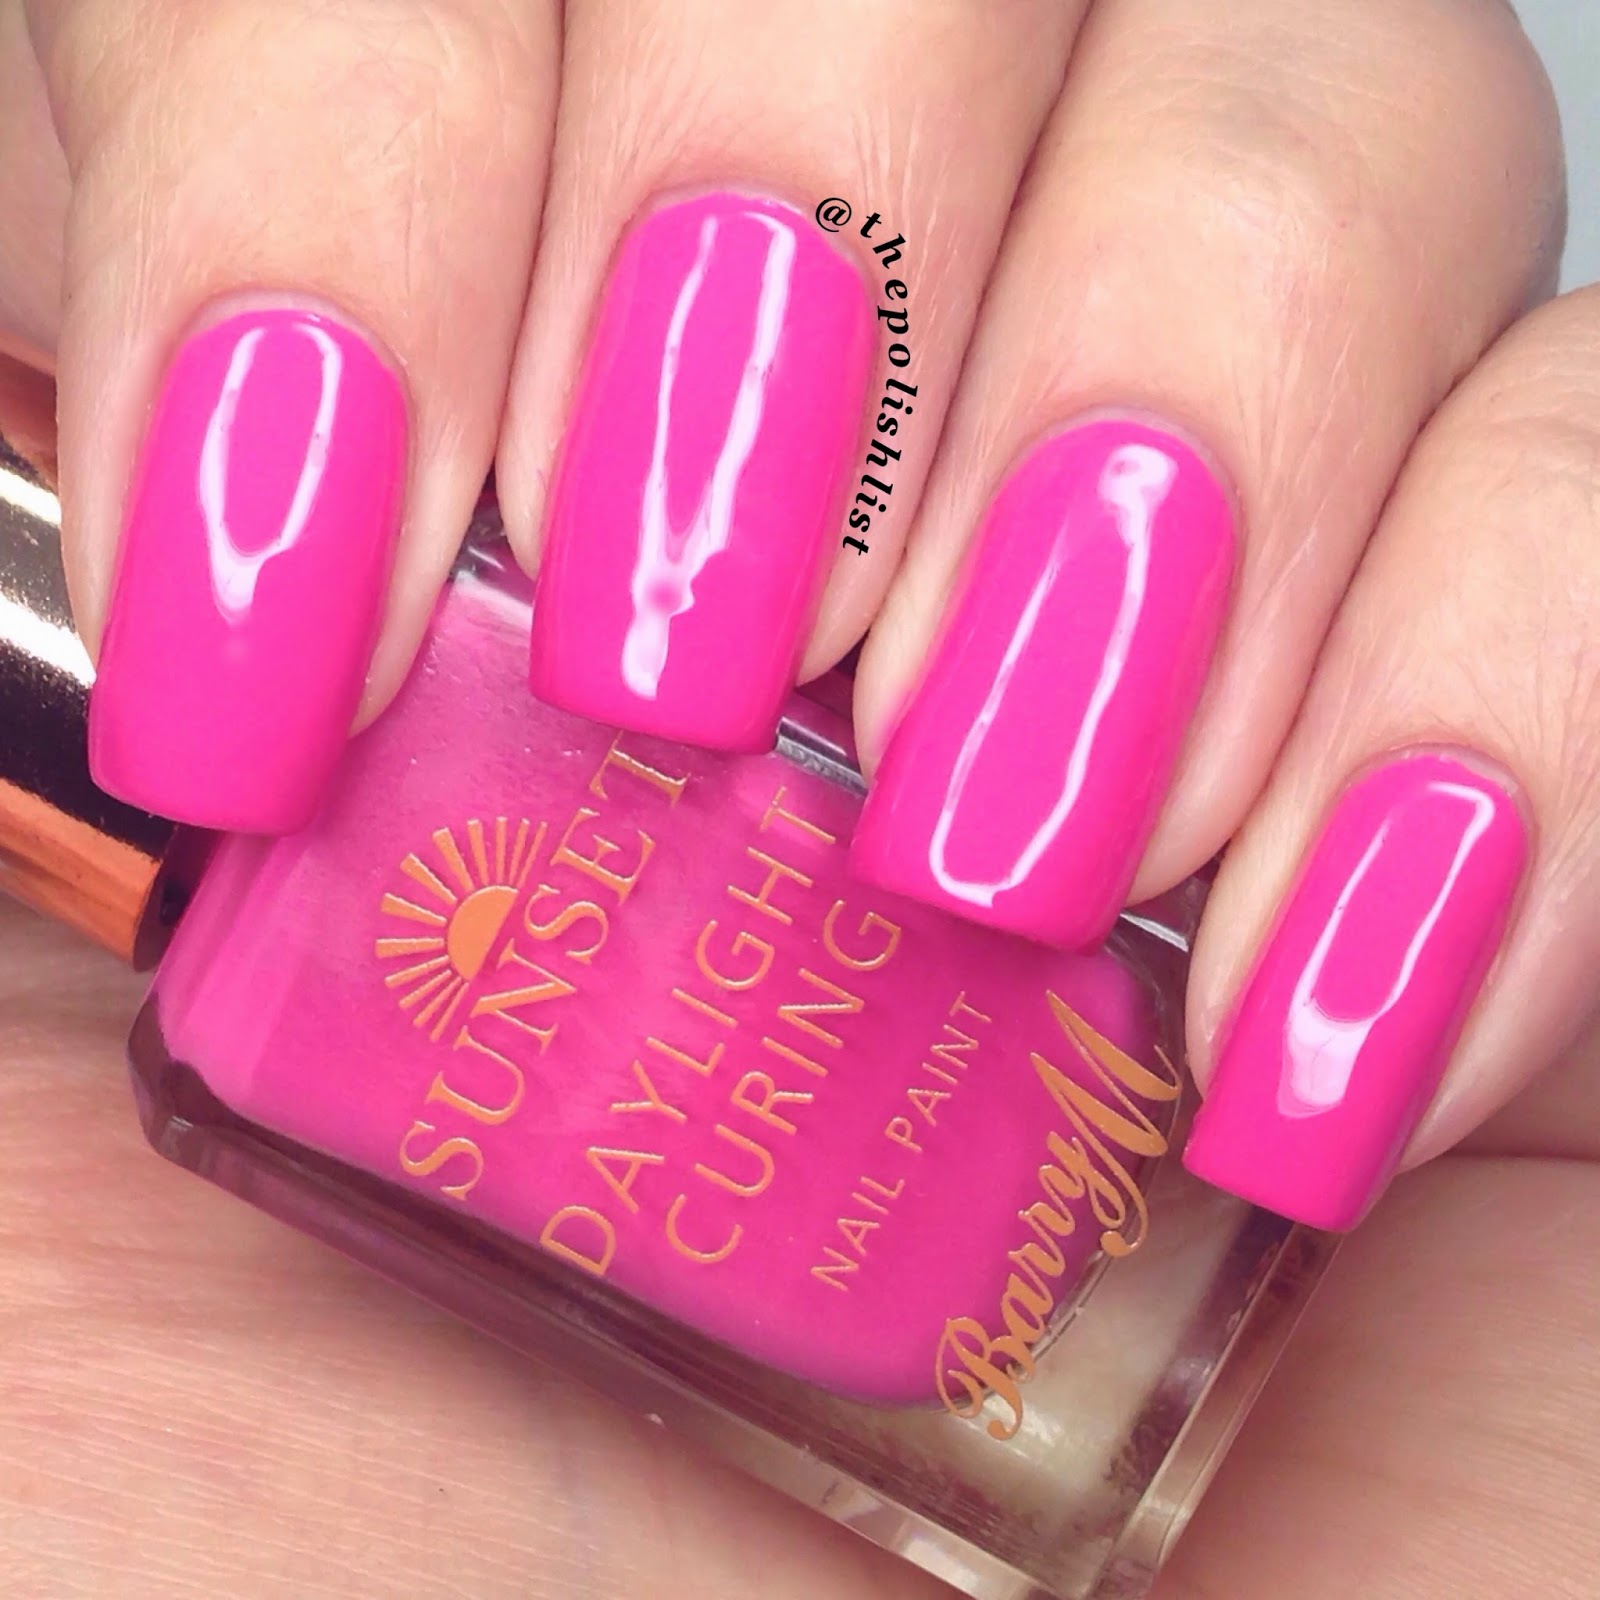 Barry m Sunset Daylight Curing